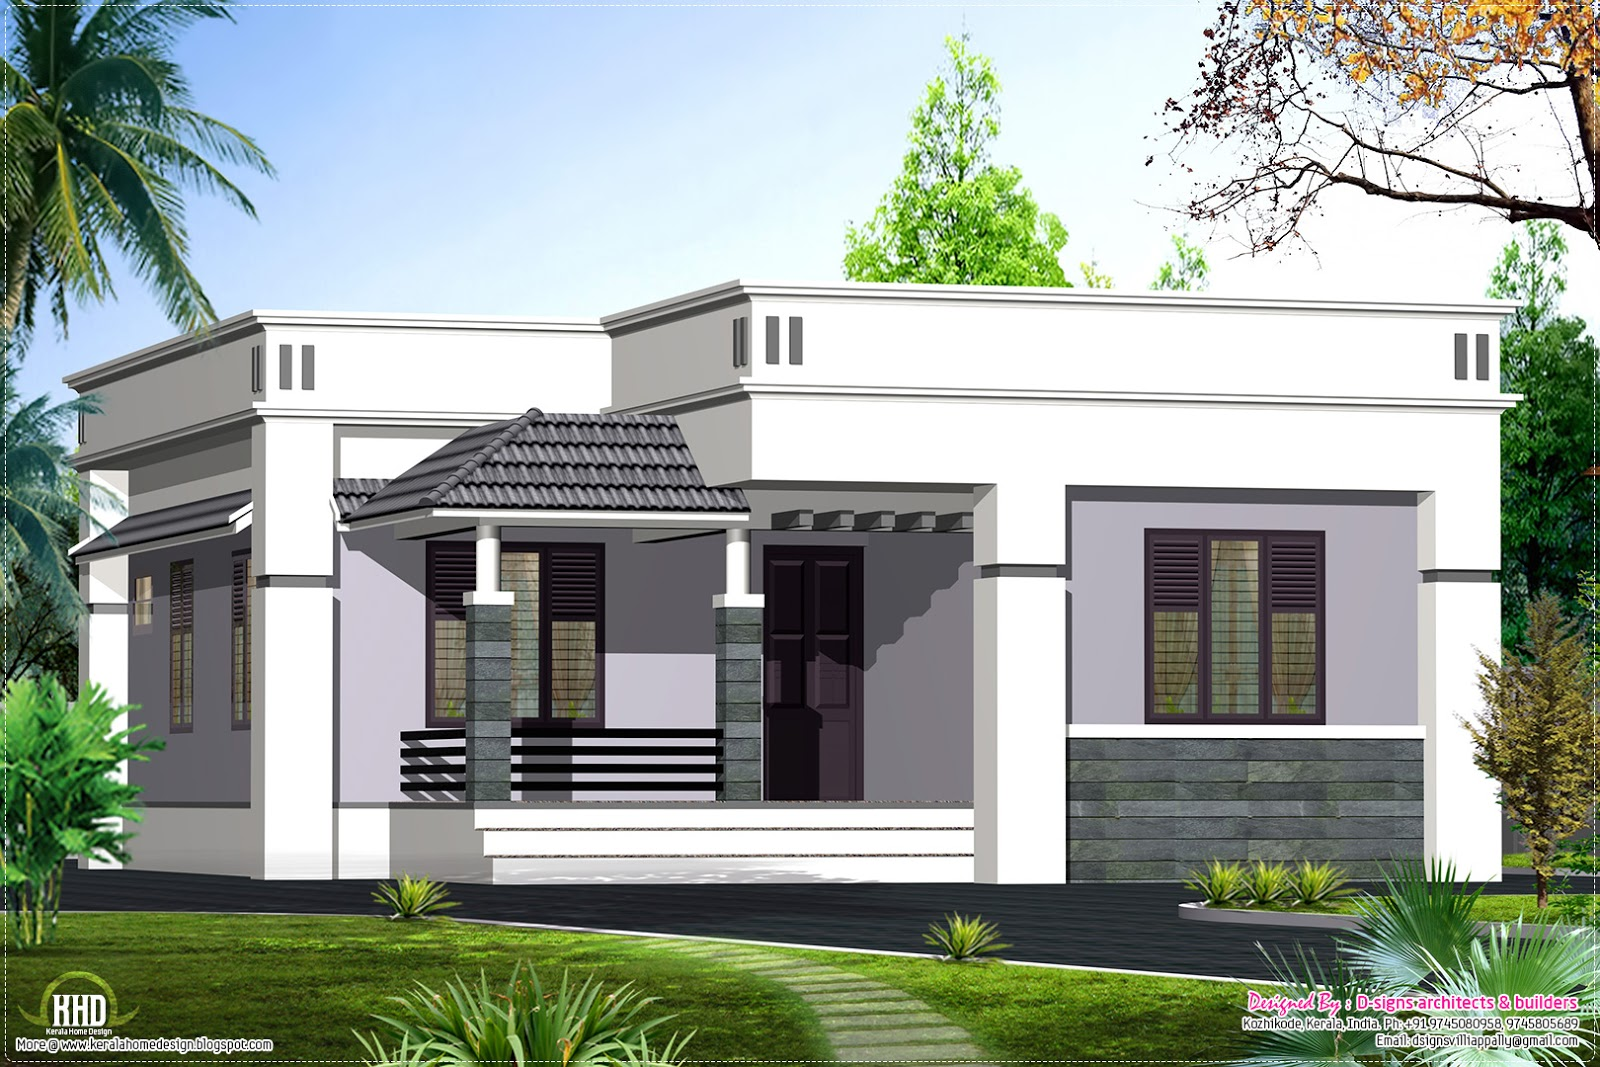 One floor house design 1100 kerala home design and floor plans House plans and designs